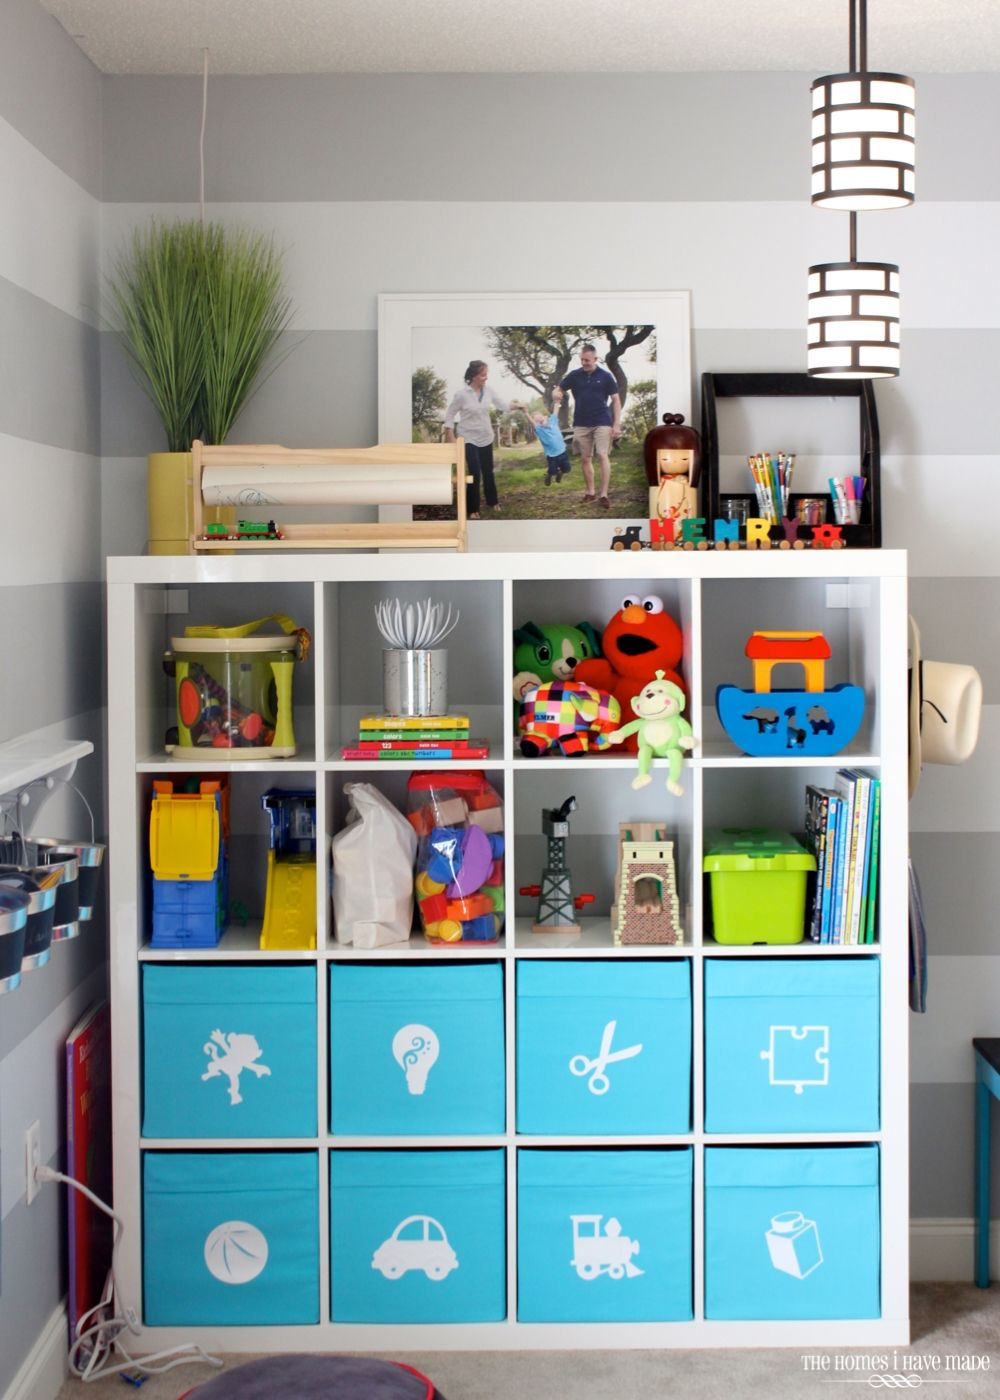 39 Fantastisch Ikea Expedit Kinderzimmer